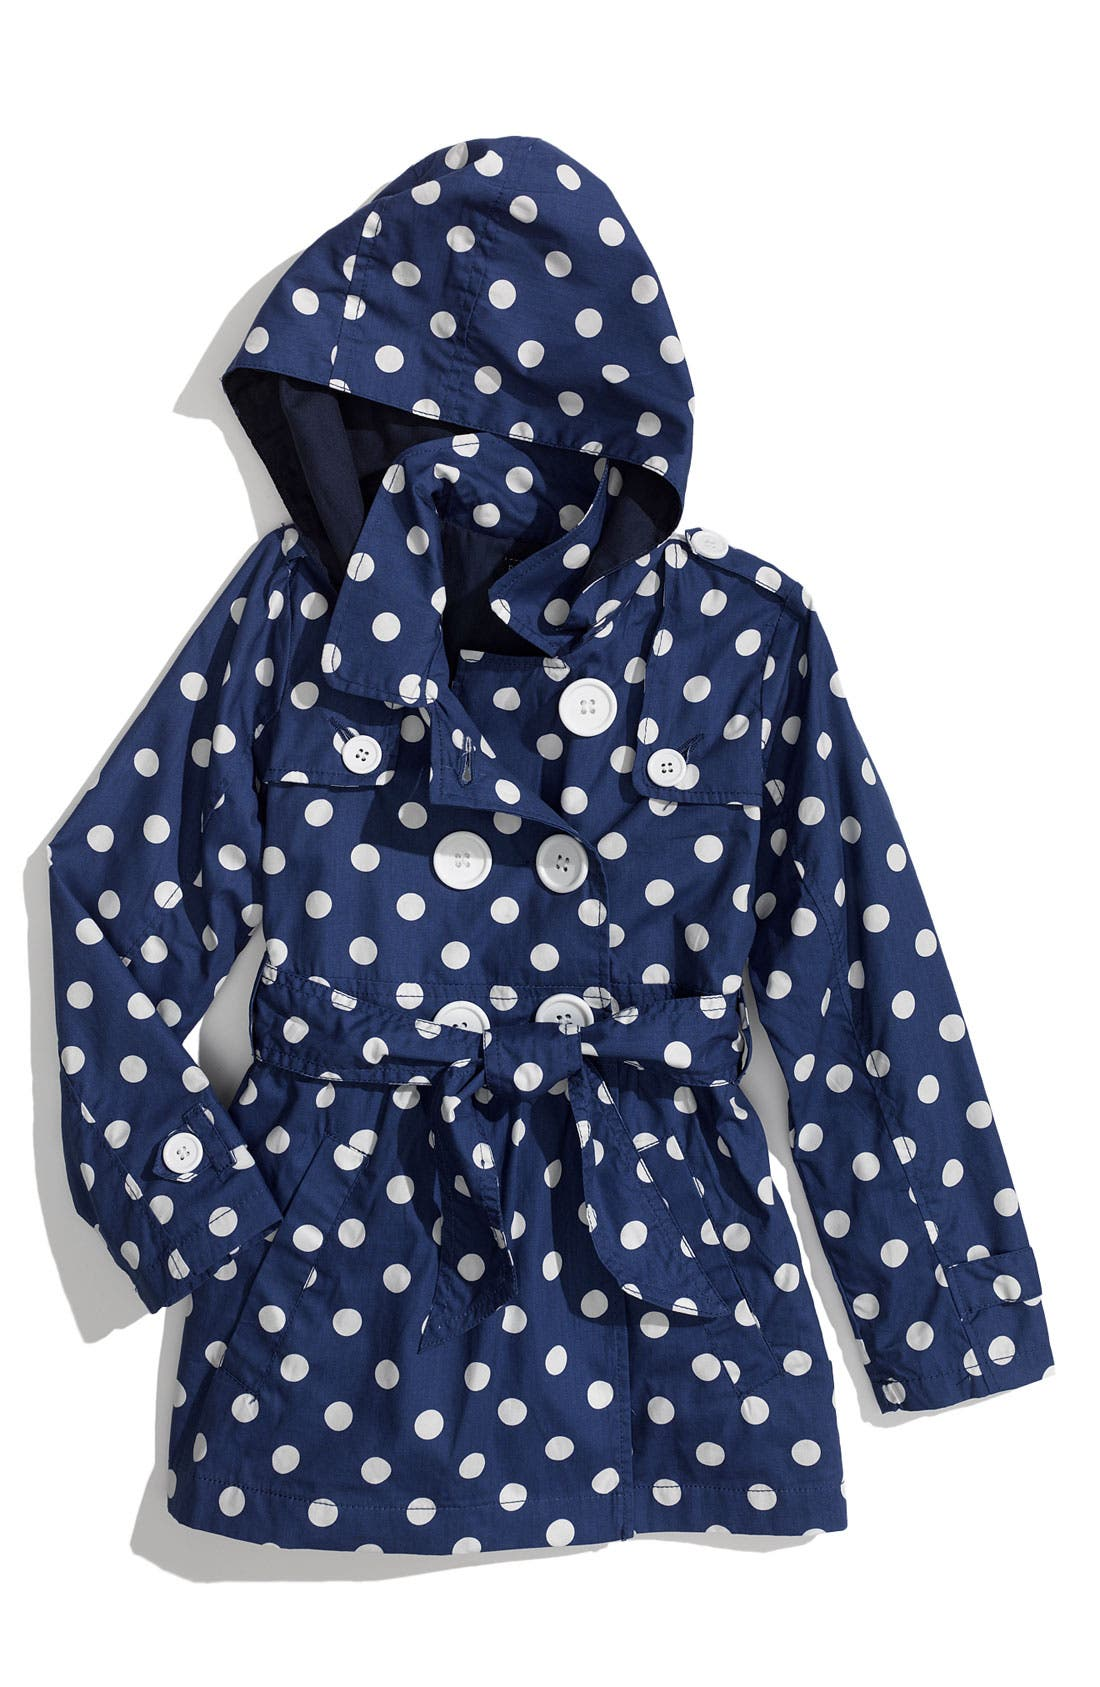 Alternate Image 1 Selected - Pumpkin Patch 'Spotty' Print Trench Coat (Little Girls)